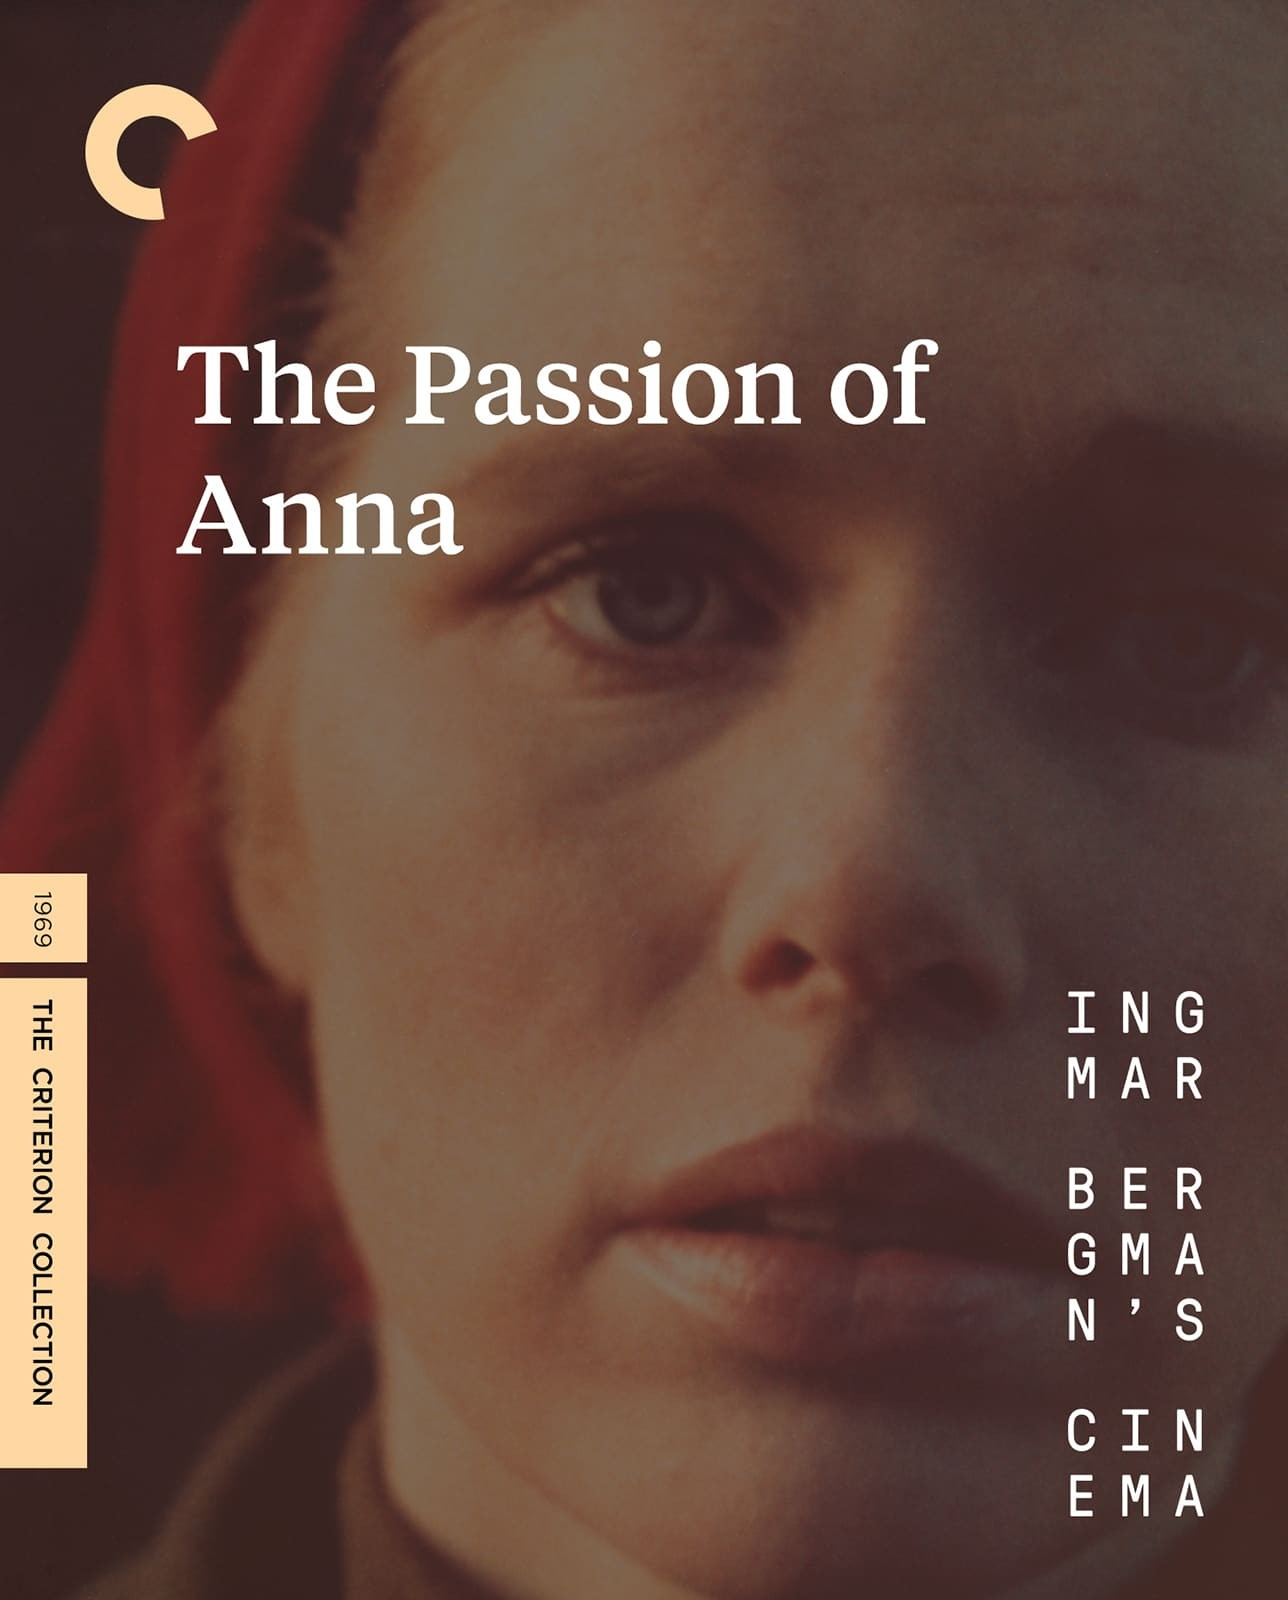 The Passion of Anna